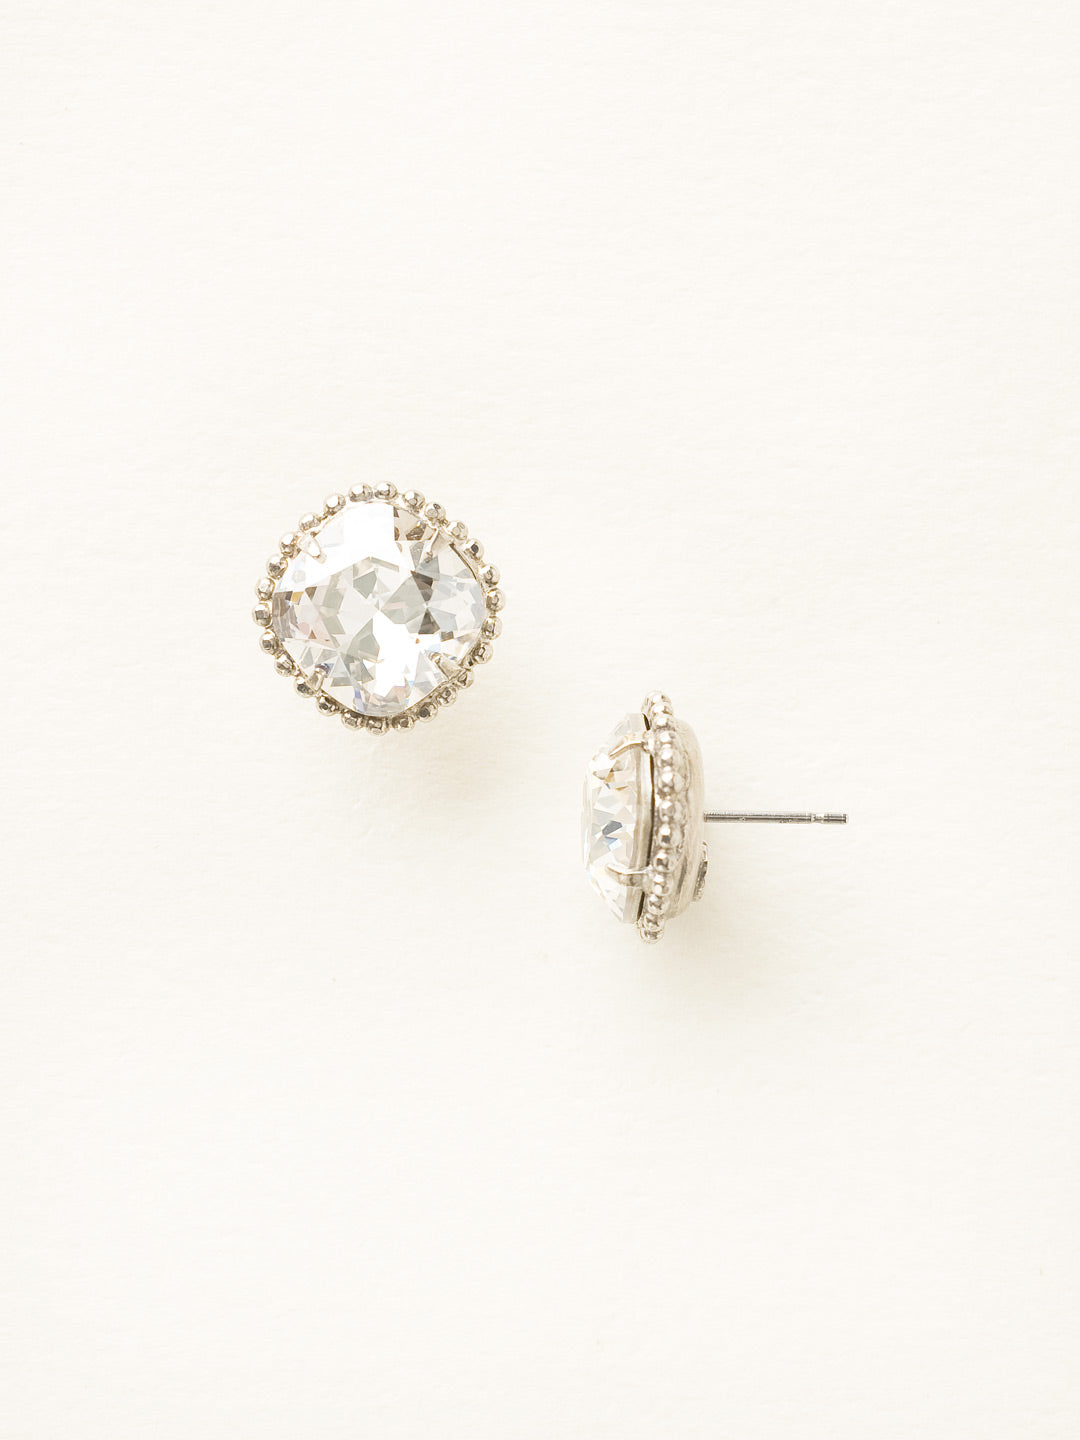 Cushion-Cut Solitaire Stud Earrings - EBX10ASSSH